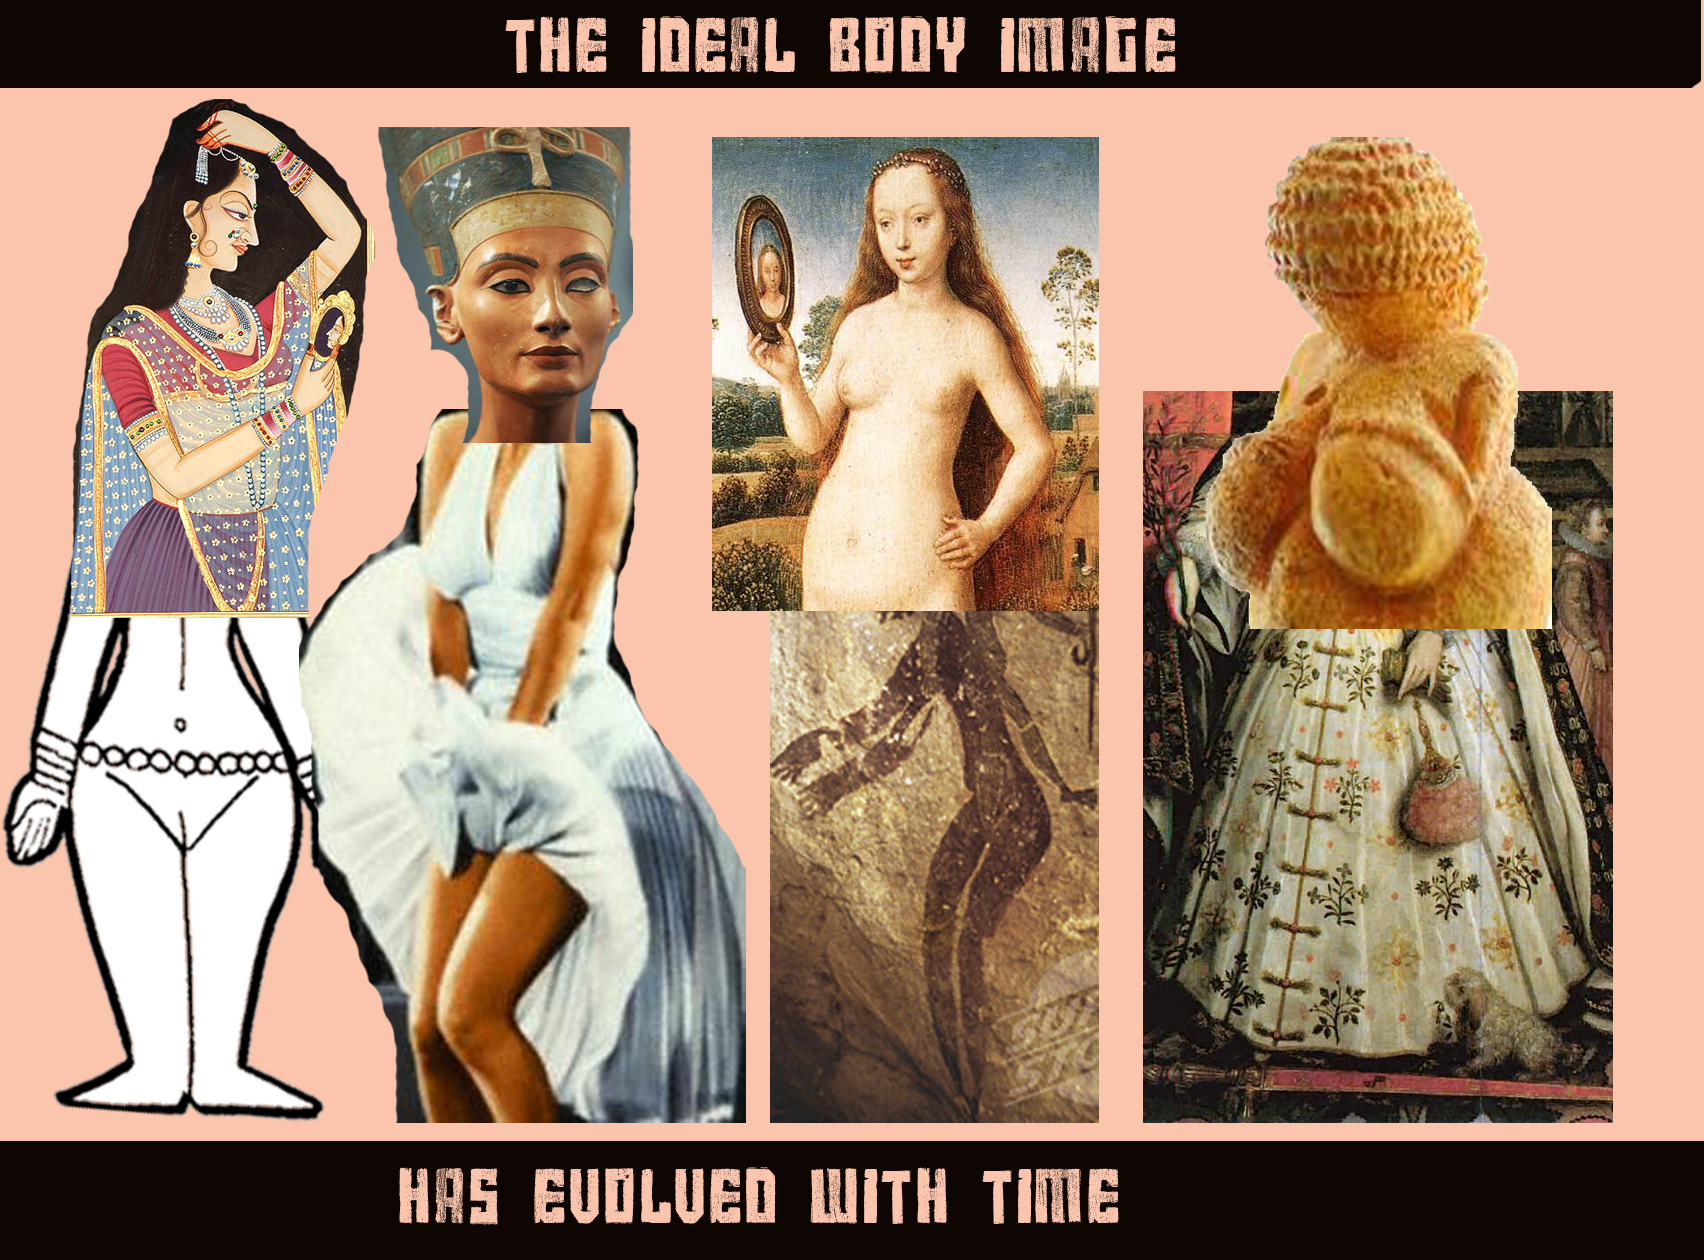 A collage showing how the ideal body type has evolved over time